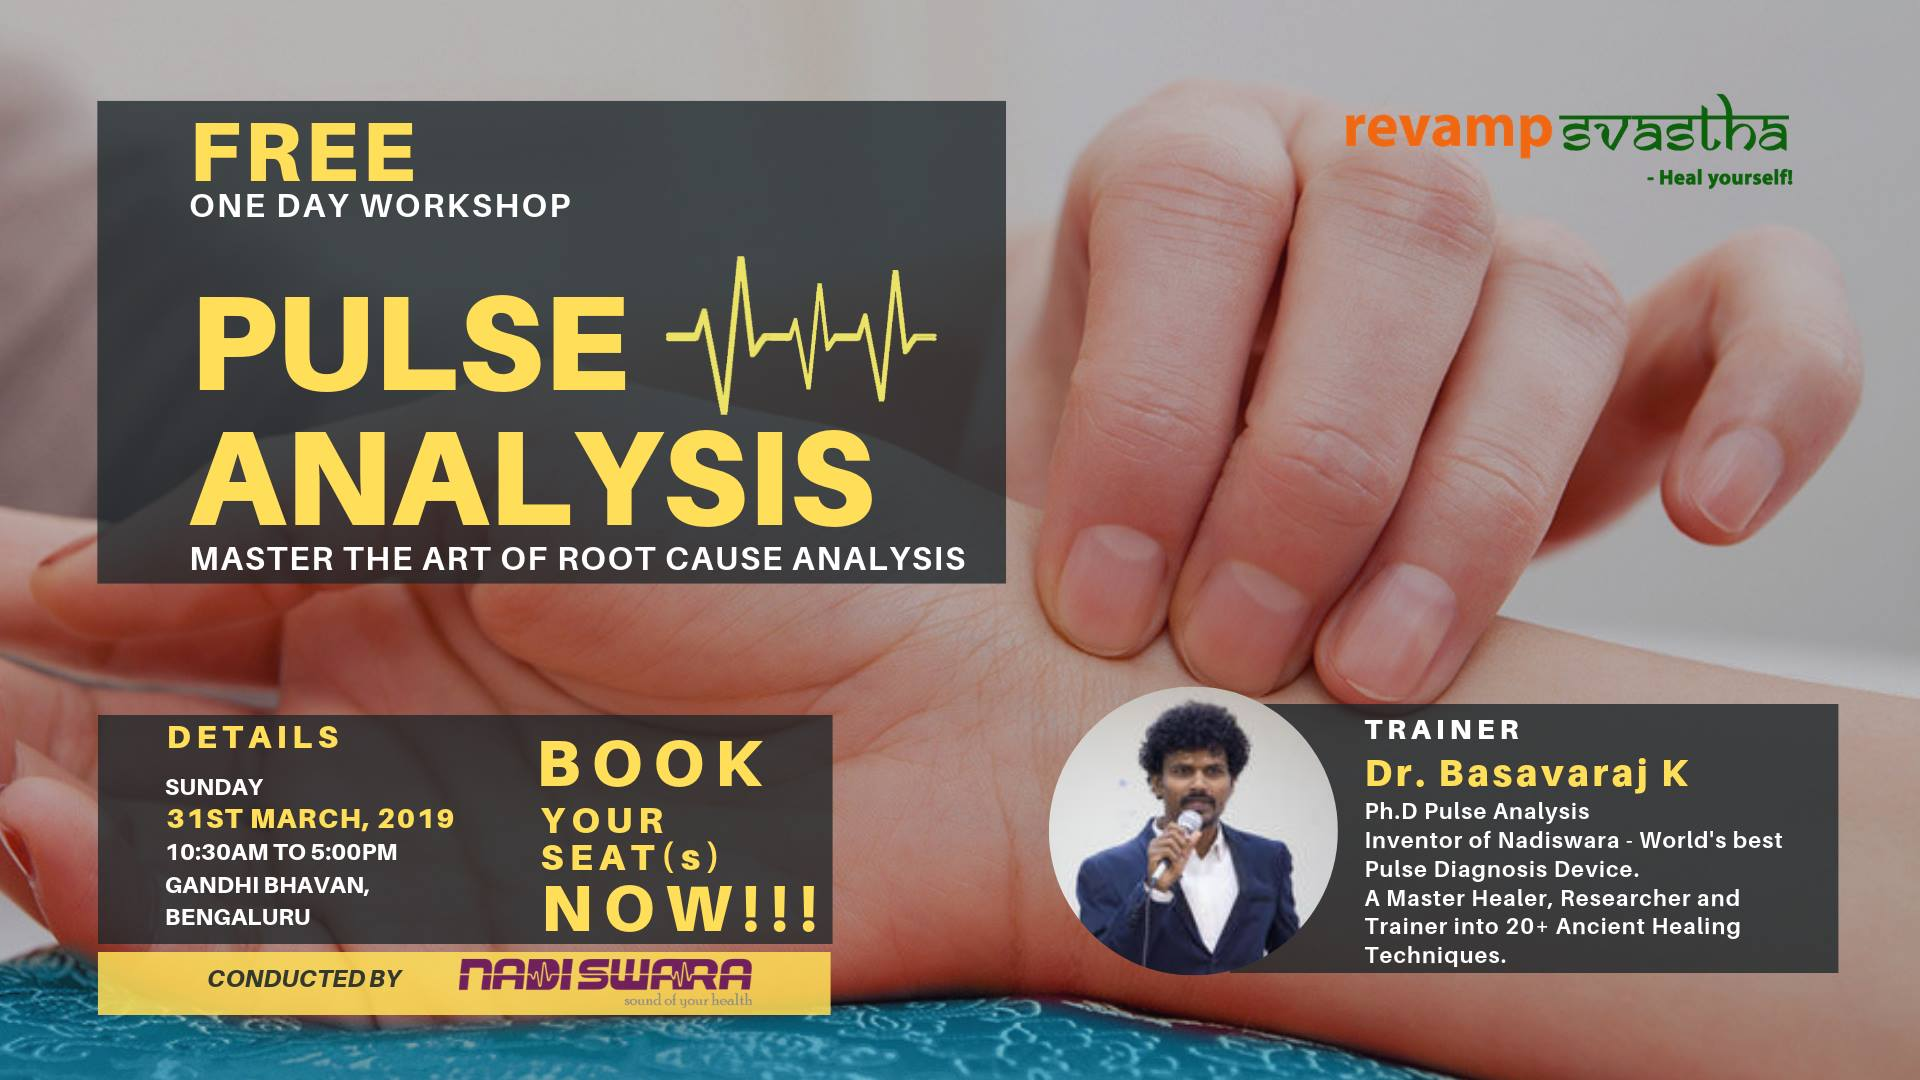 Free One Day Workshop on Pulse Diagnosis